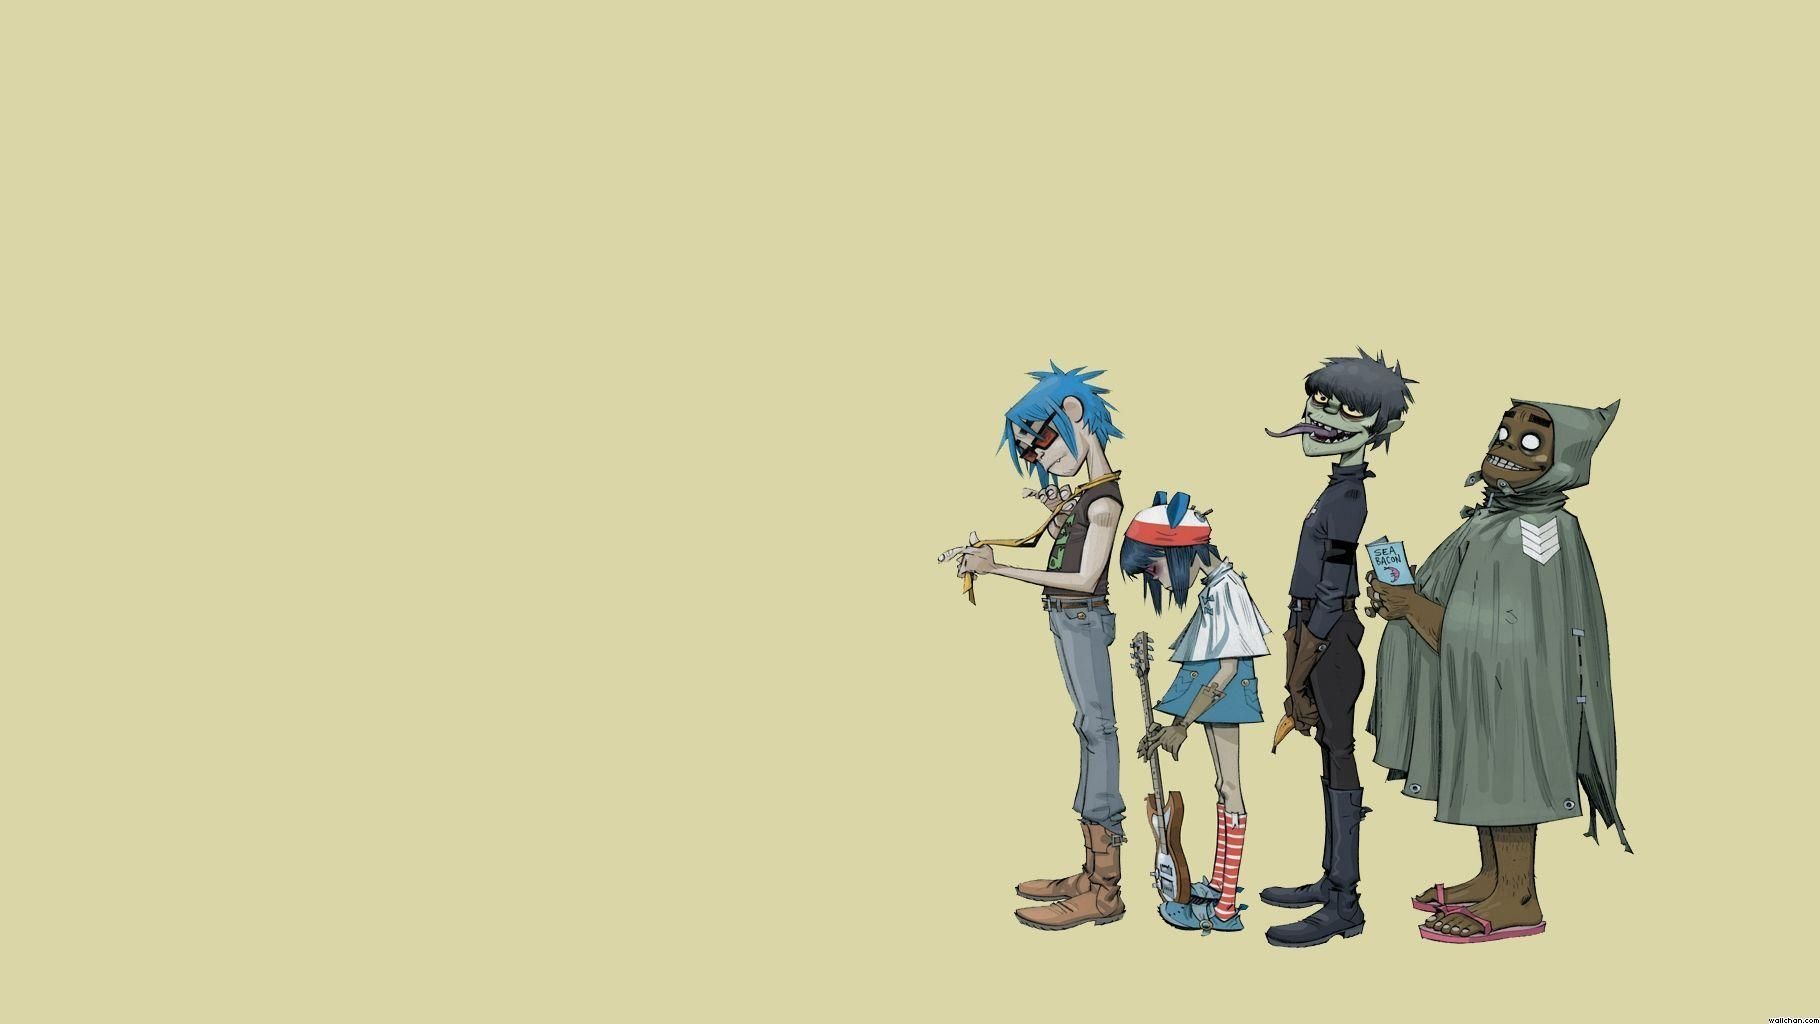 download wallpaper gorillaz desktop -#main